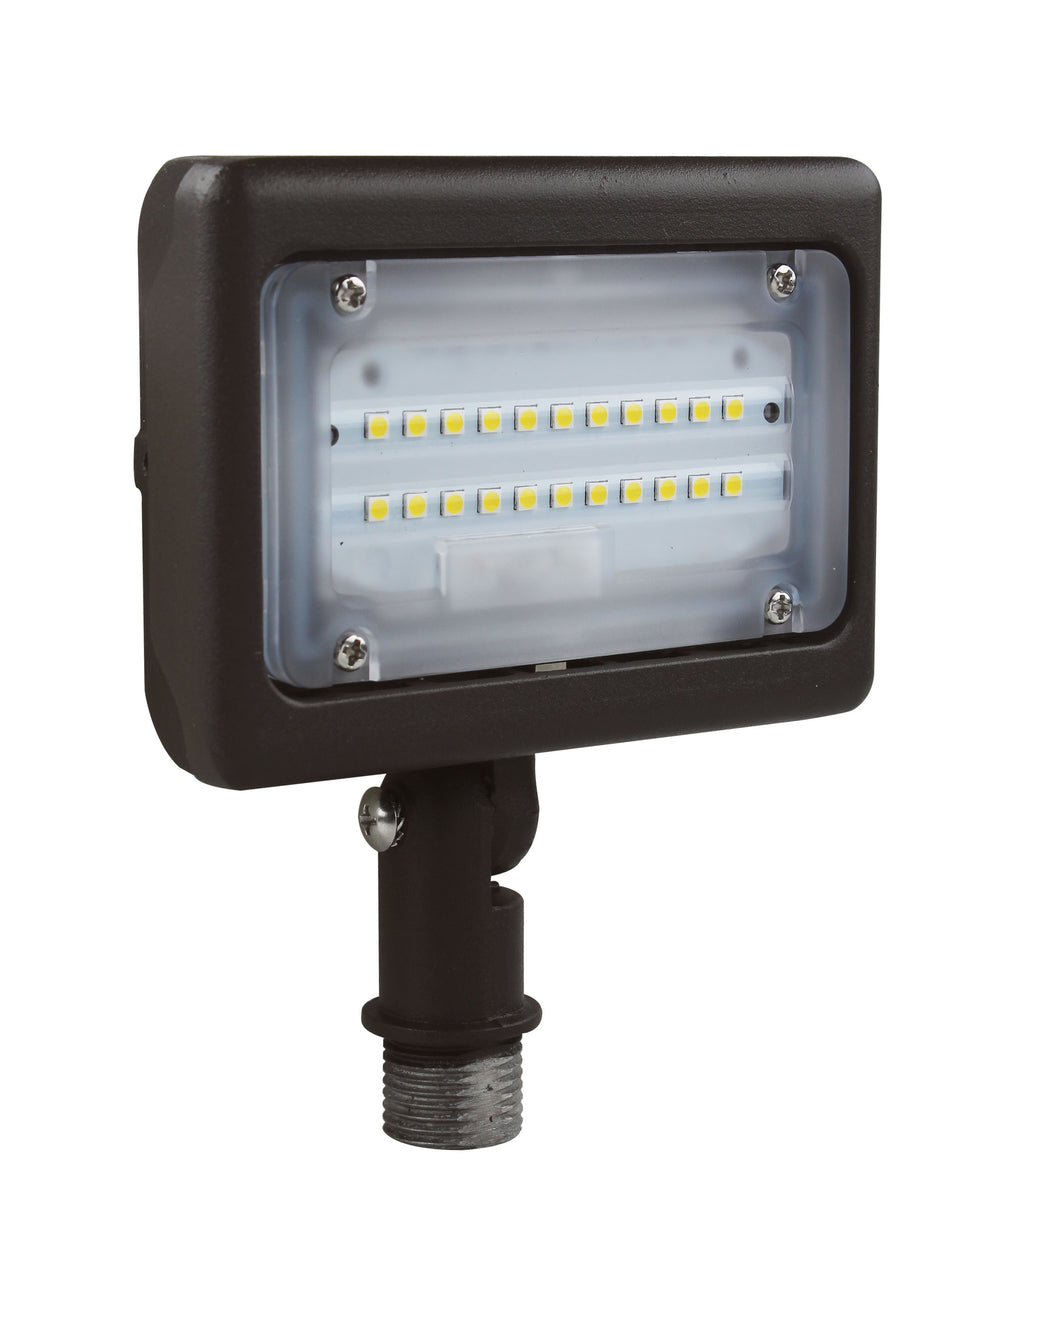 Premium Multi-Purpose Area Light - 30W - 3K / 4K / 5K | Your LED Light Source